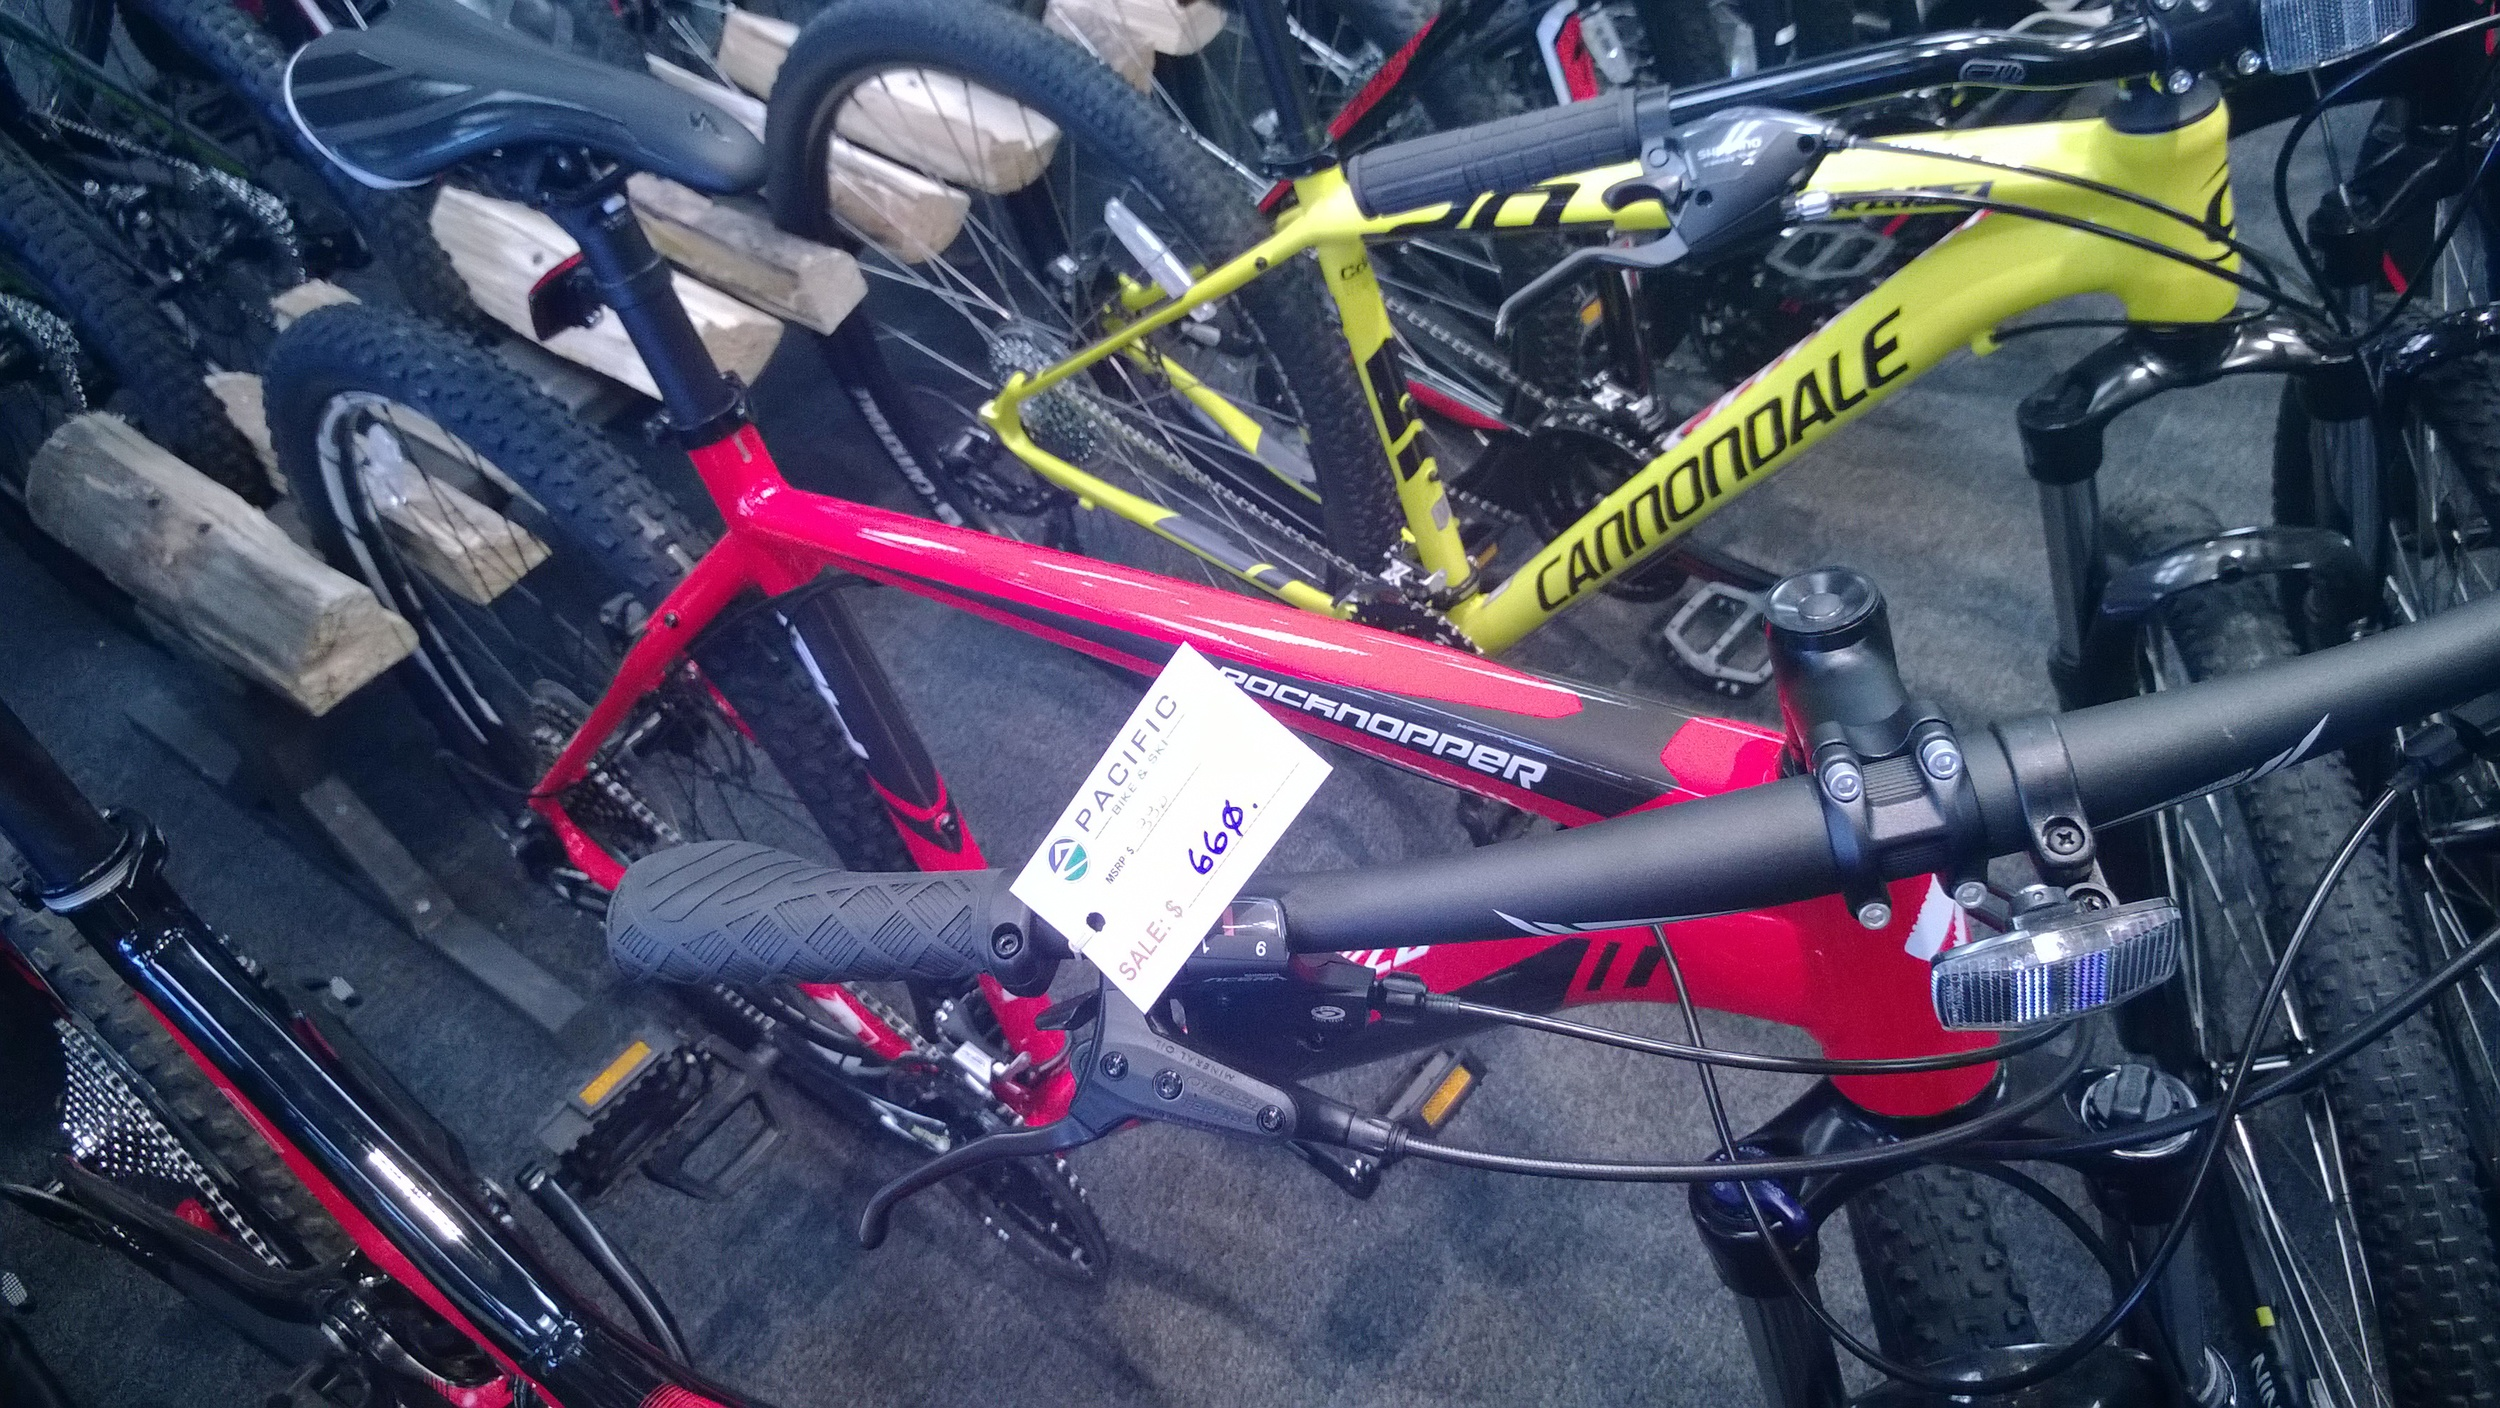 Specialized RockHopper 29 at Pacific Bike and Ski in Sammamish.